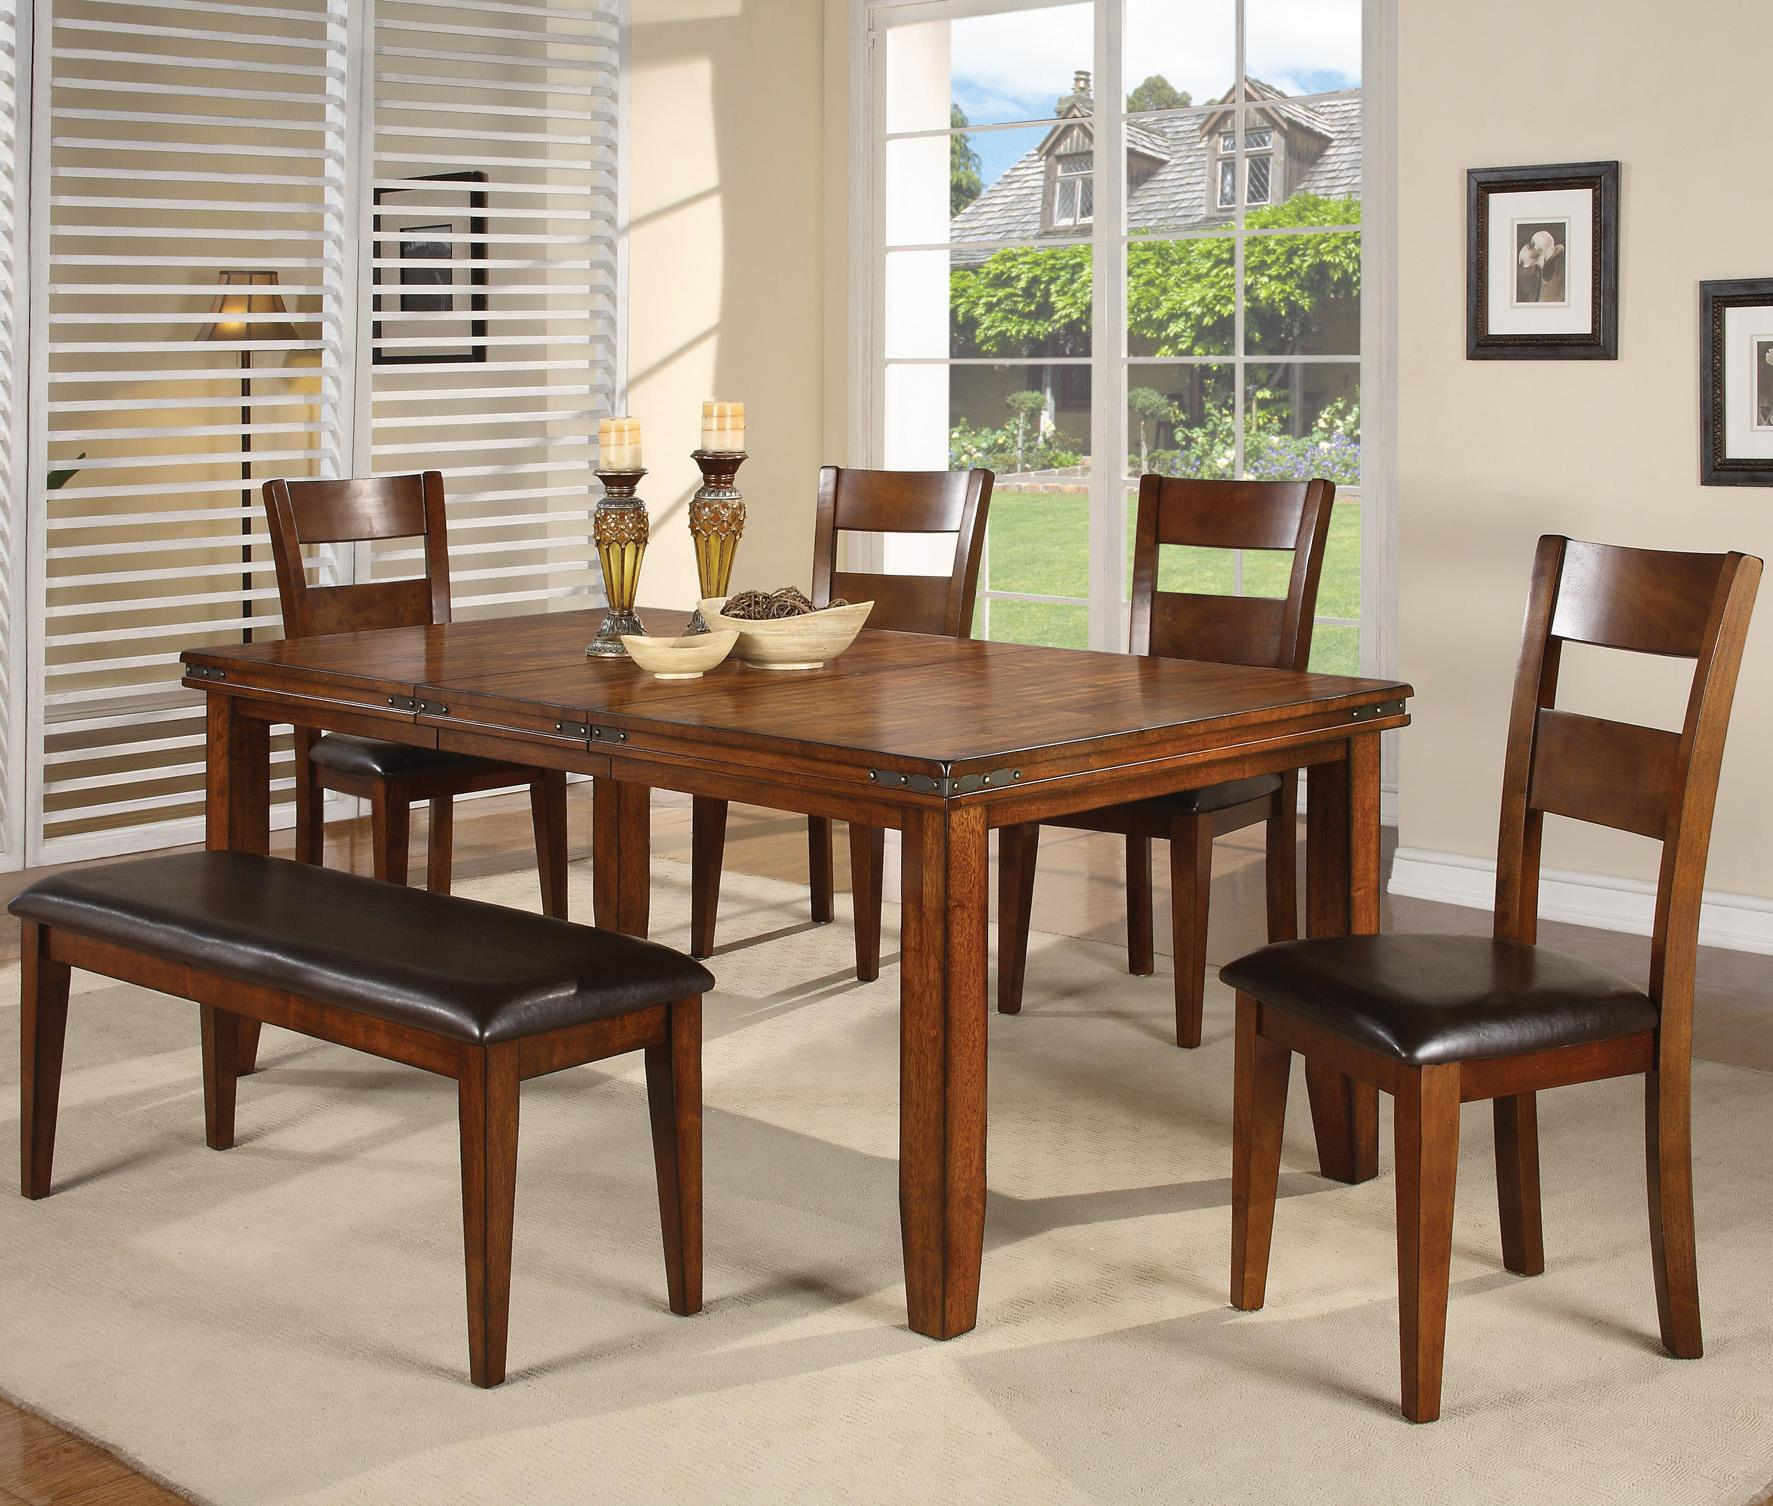 dining table and chair sets outdoor bistro chairs uk cm figaro 6 piece side set with bench